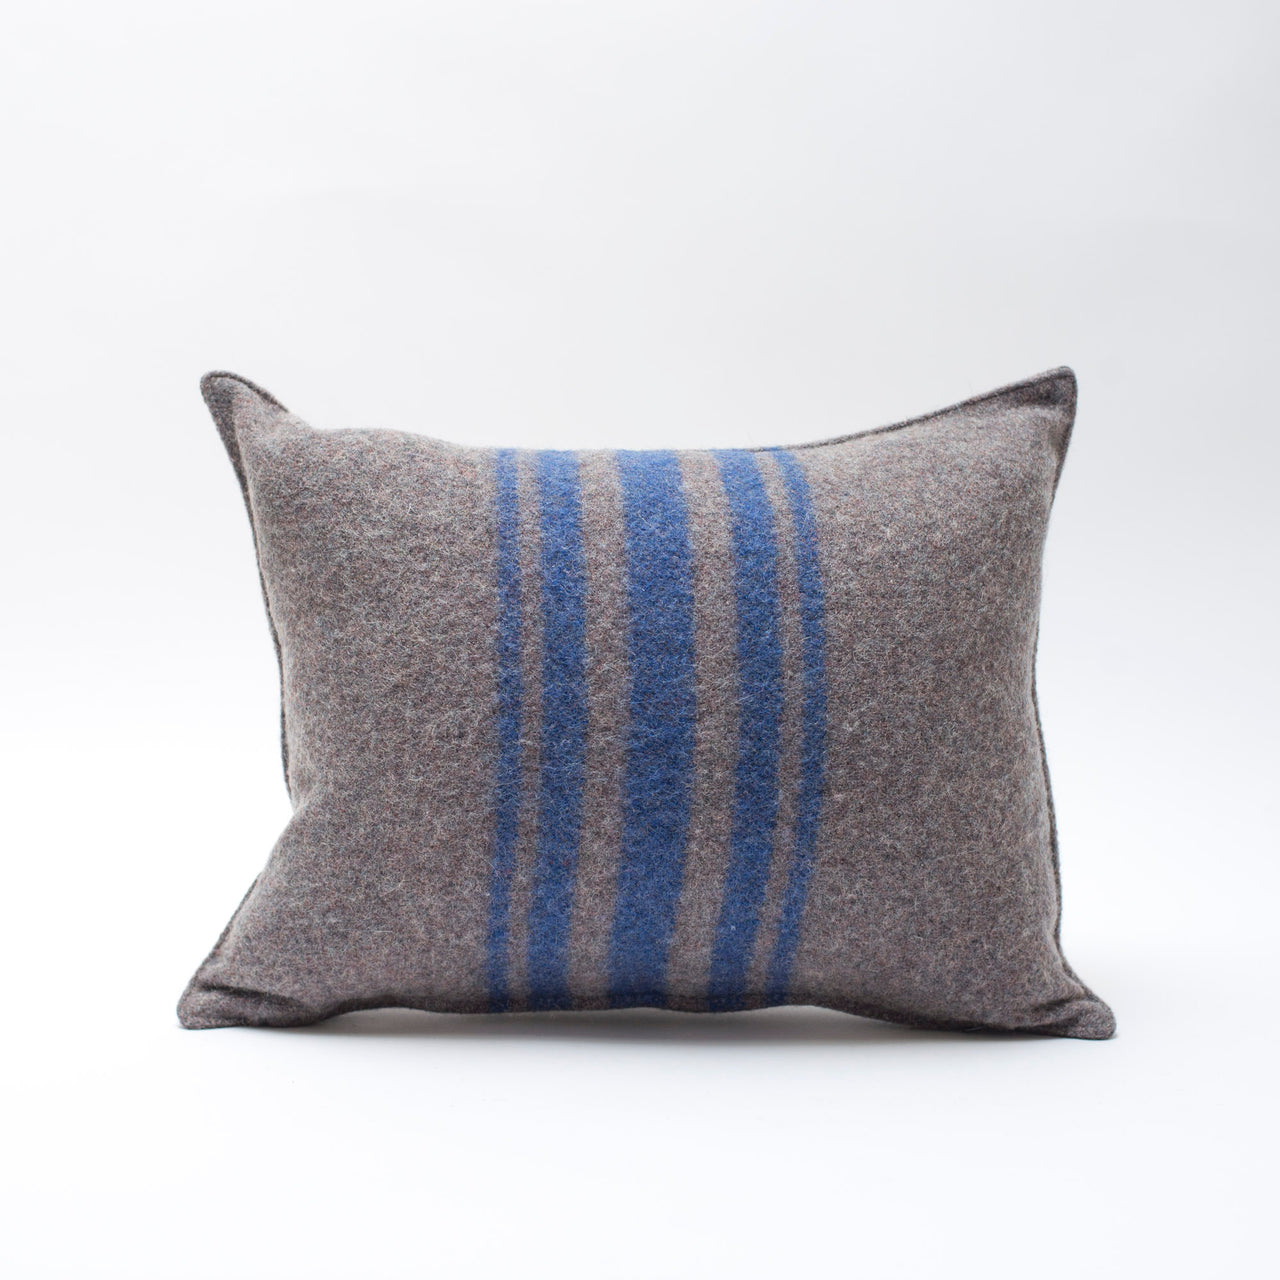 wool blanket pillows